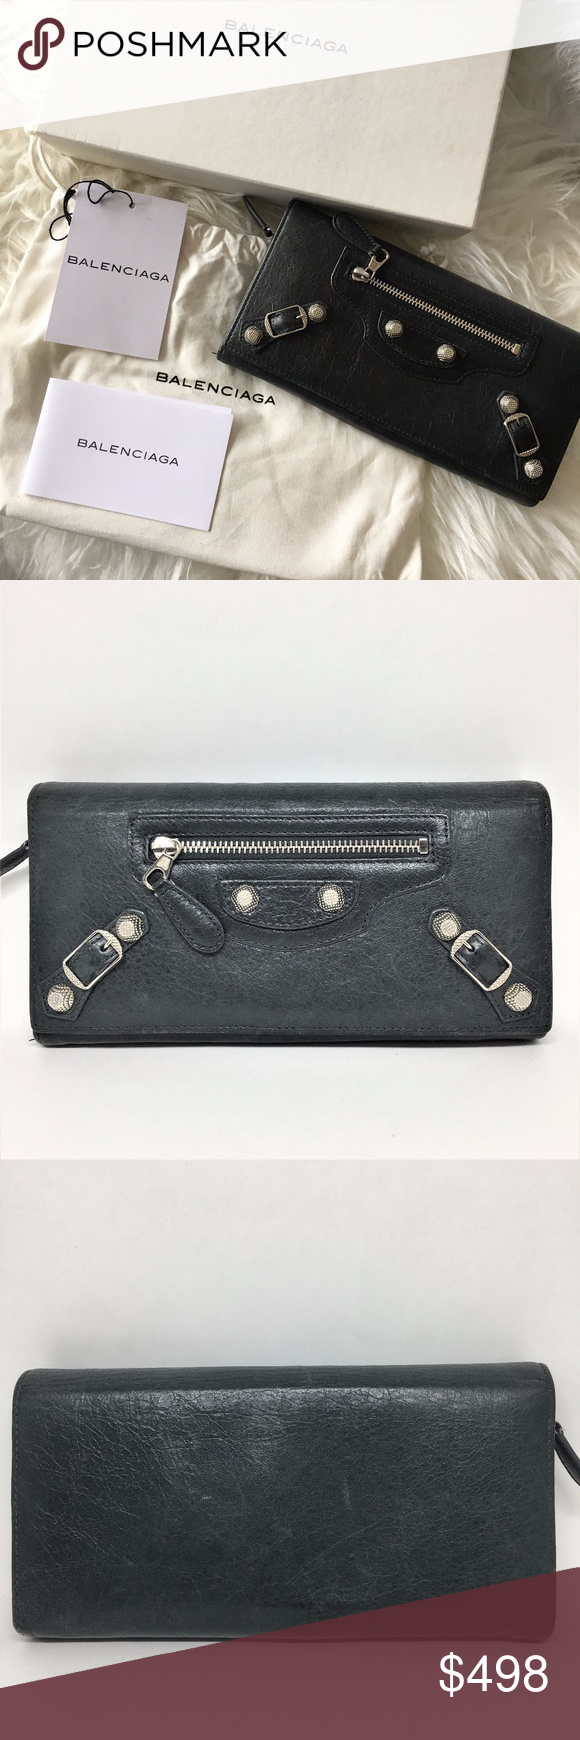 38c67b2592 BALENCIAGA Giant City Wallet Pre-owned Approx size: H: 4